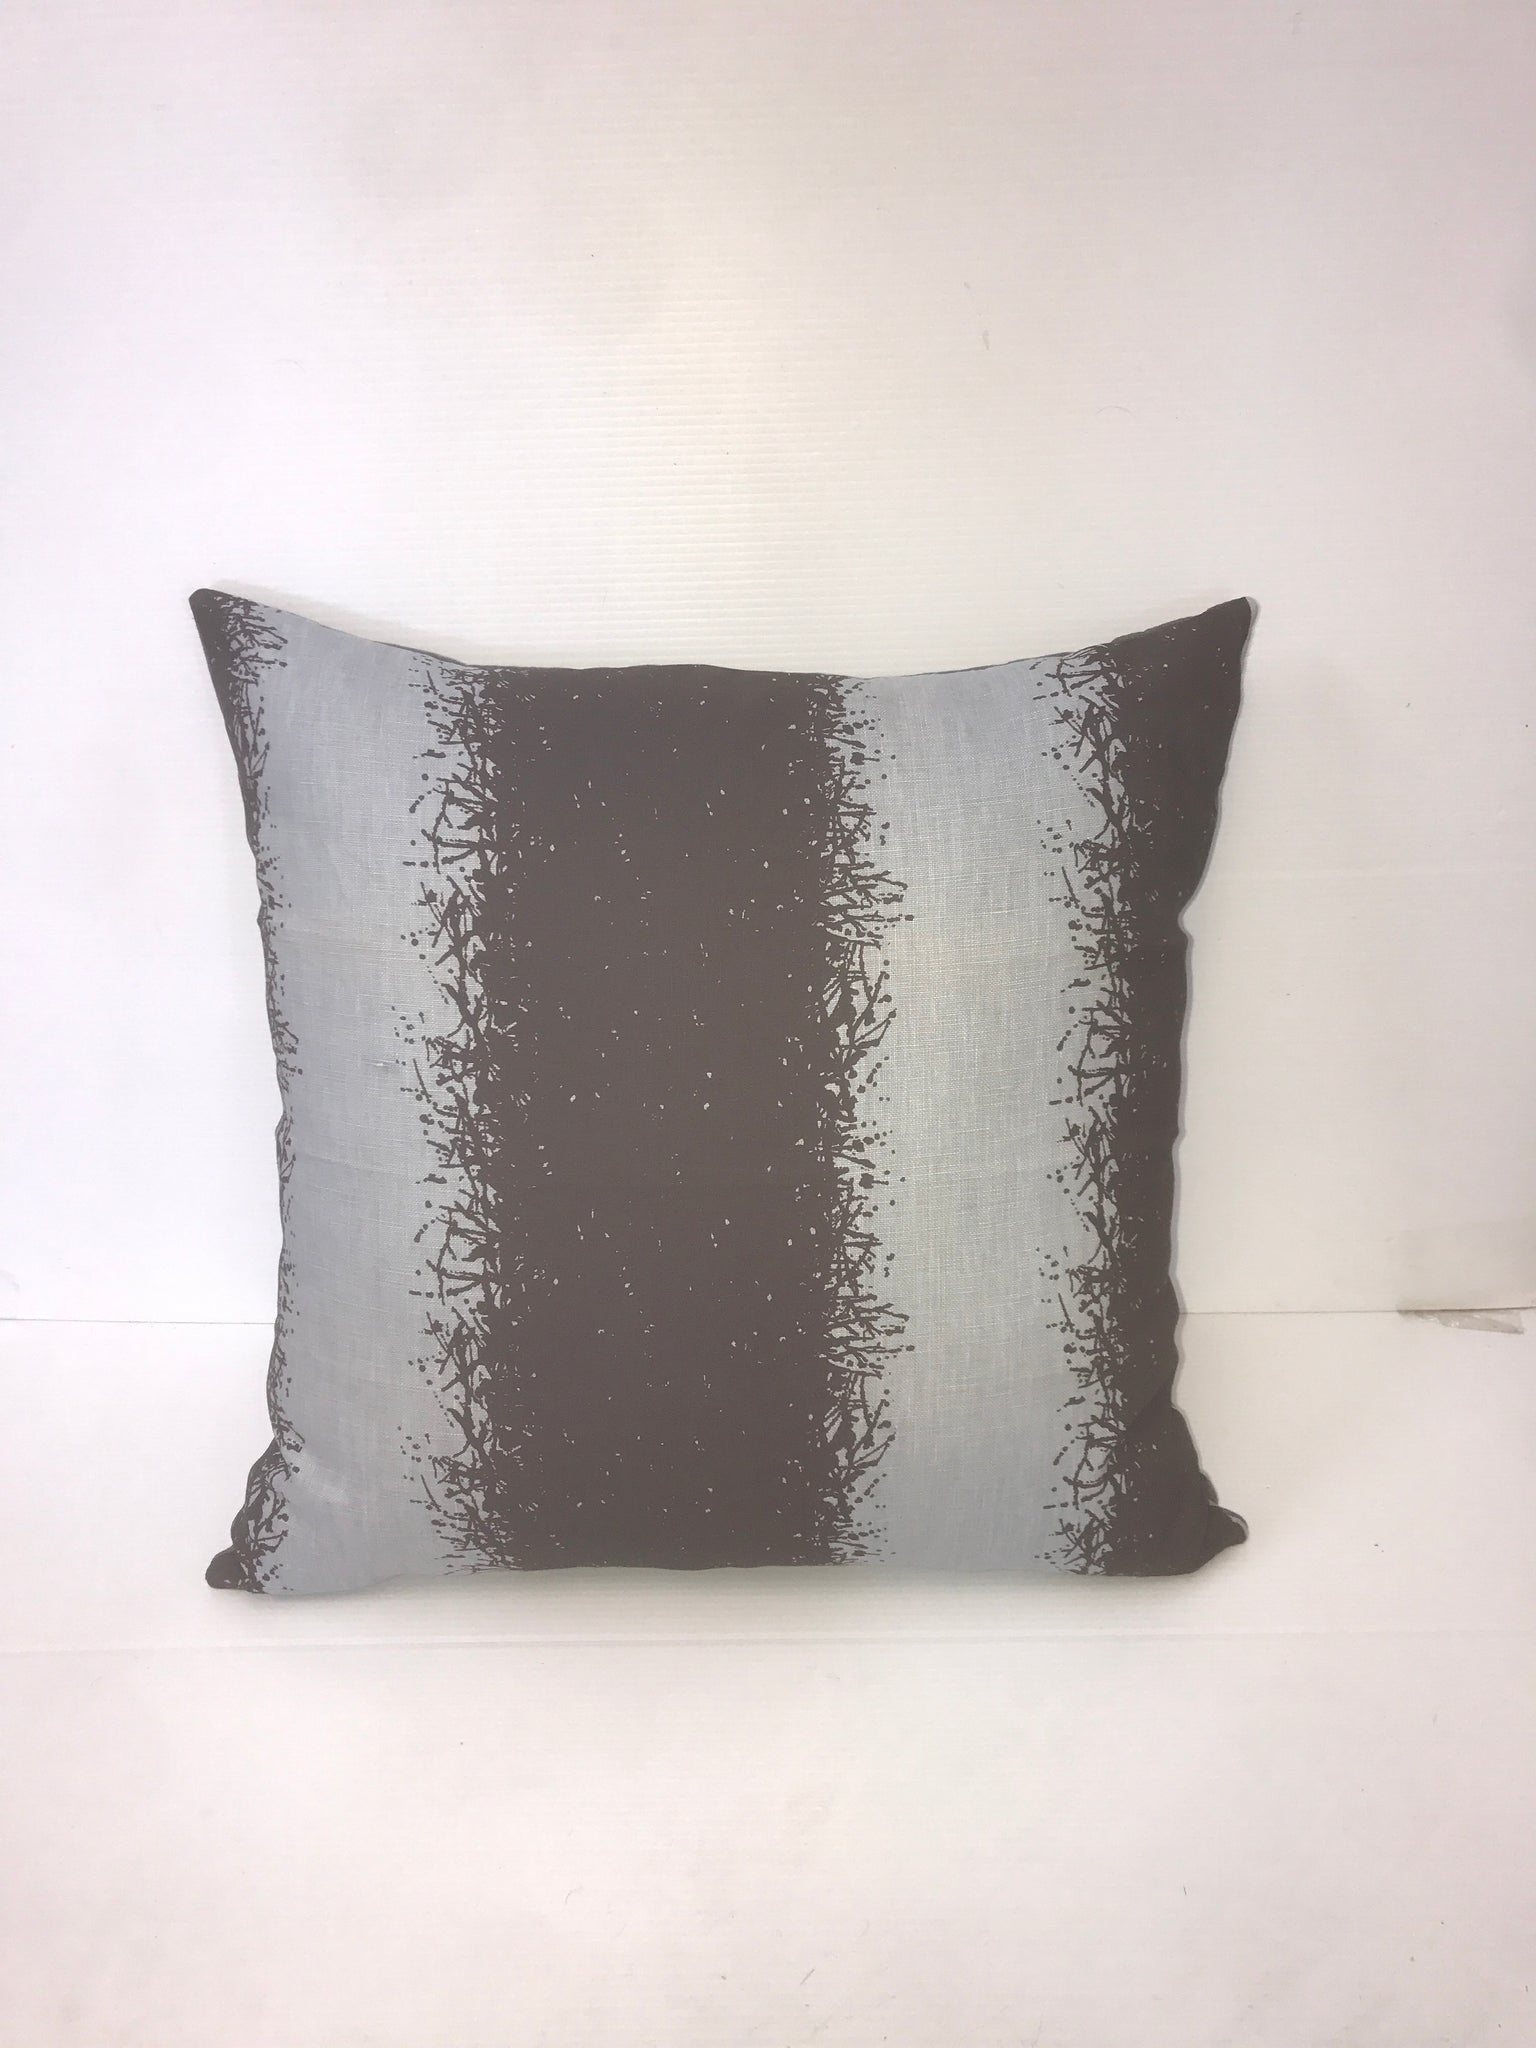 Grey/Black Square Pillow